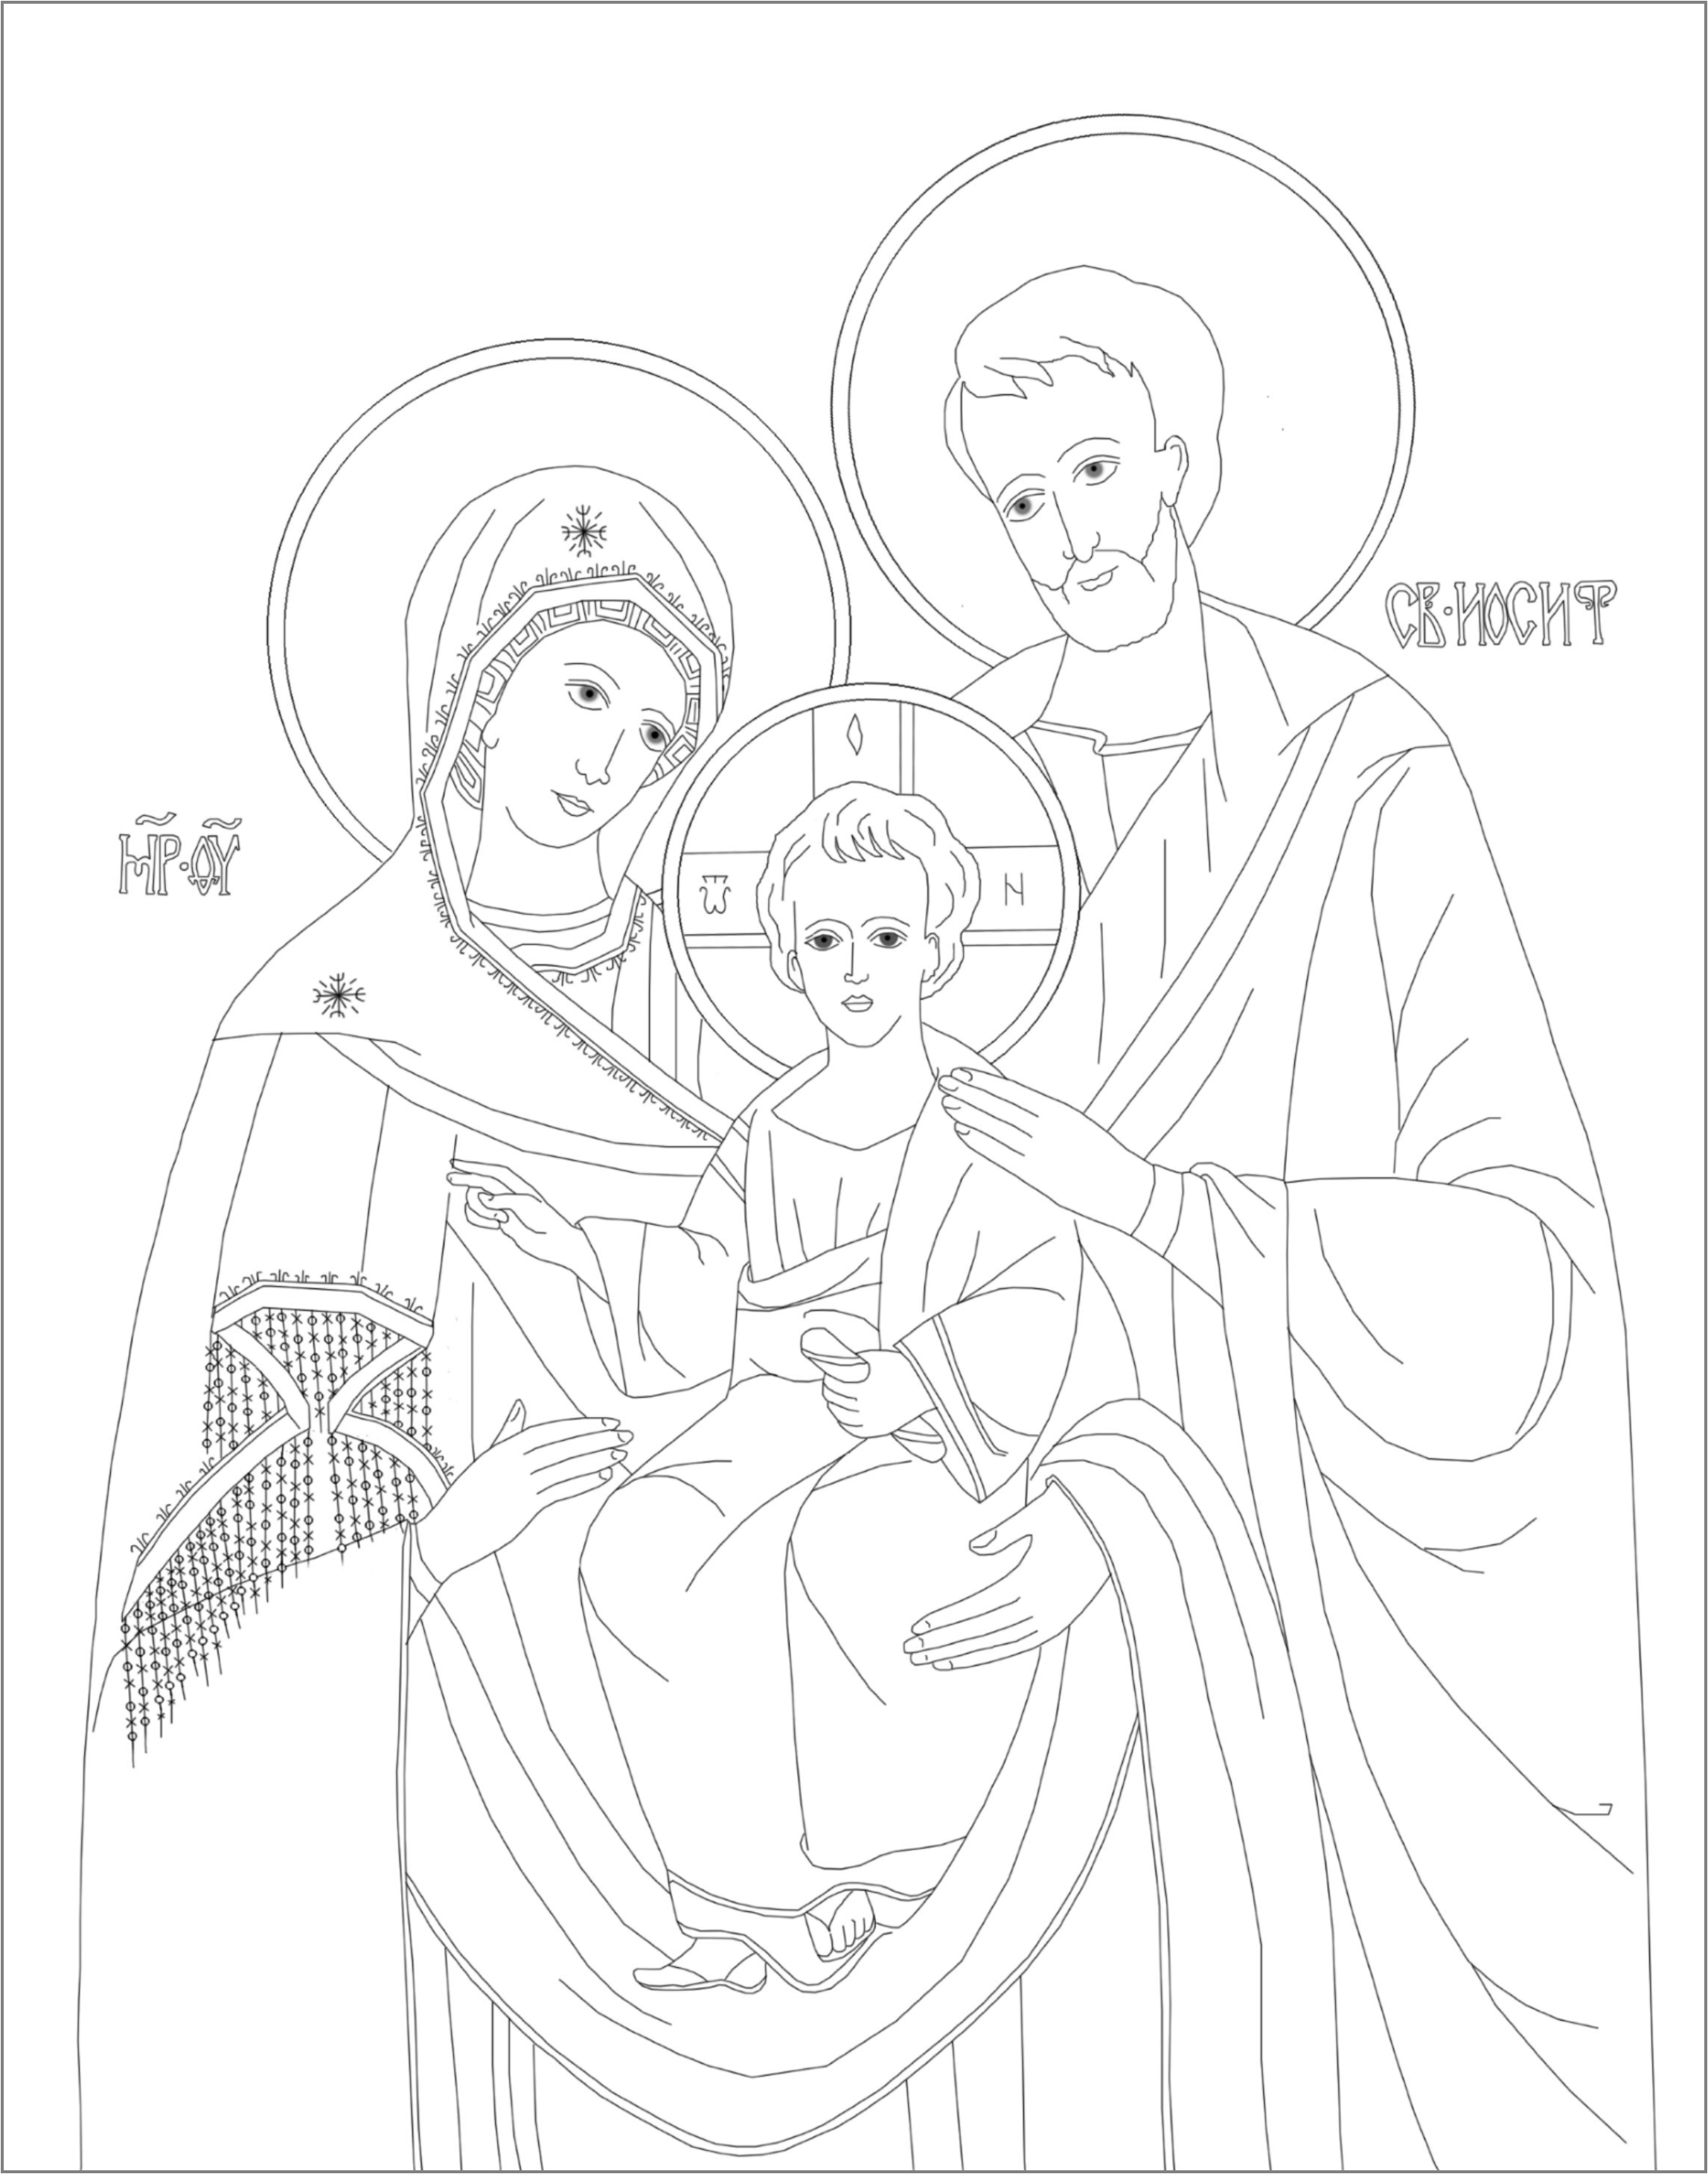 Byzantine icon coloring page based on the beautiful icon of  The Holy Family at The Ukrainian National Shrine of the Holy Family in Washington, D.C.  Icon coloring pages free to print are found at ssjoachimandanna.org.